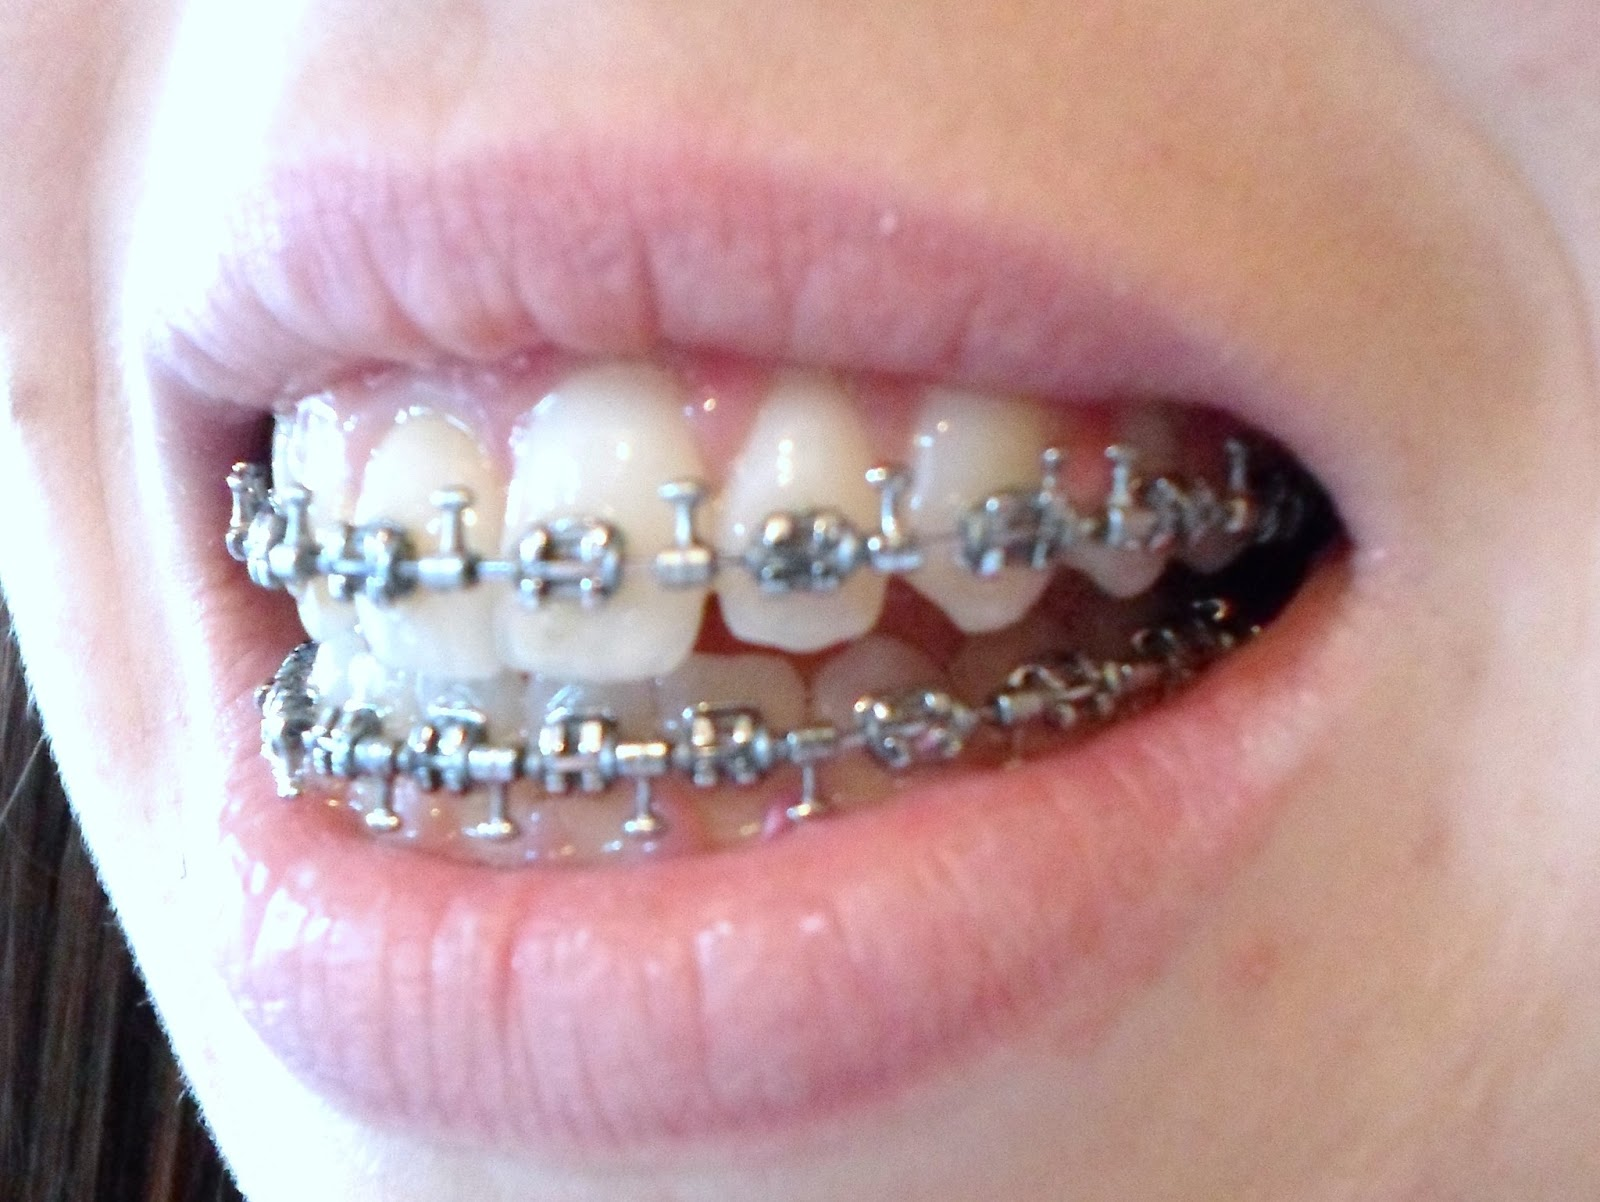 Is it hard to hook up with braces